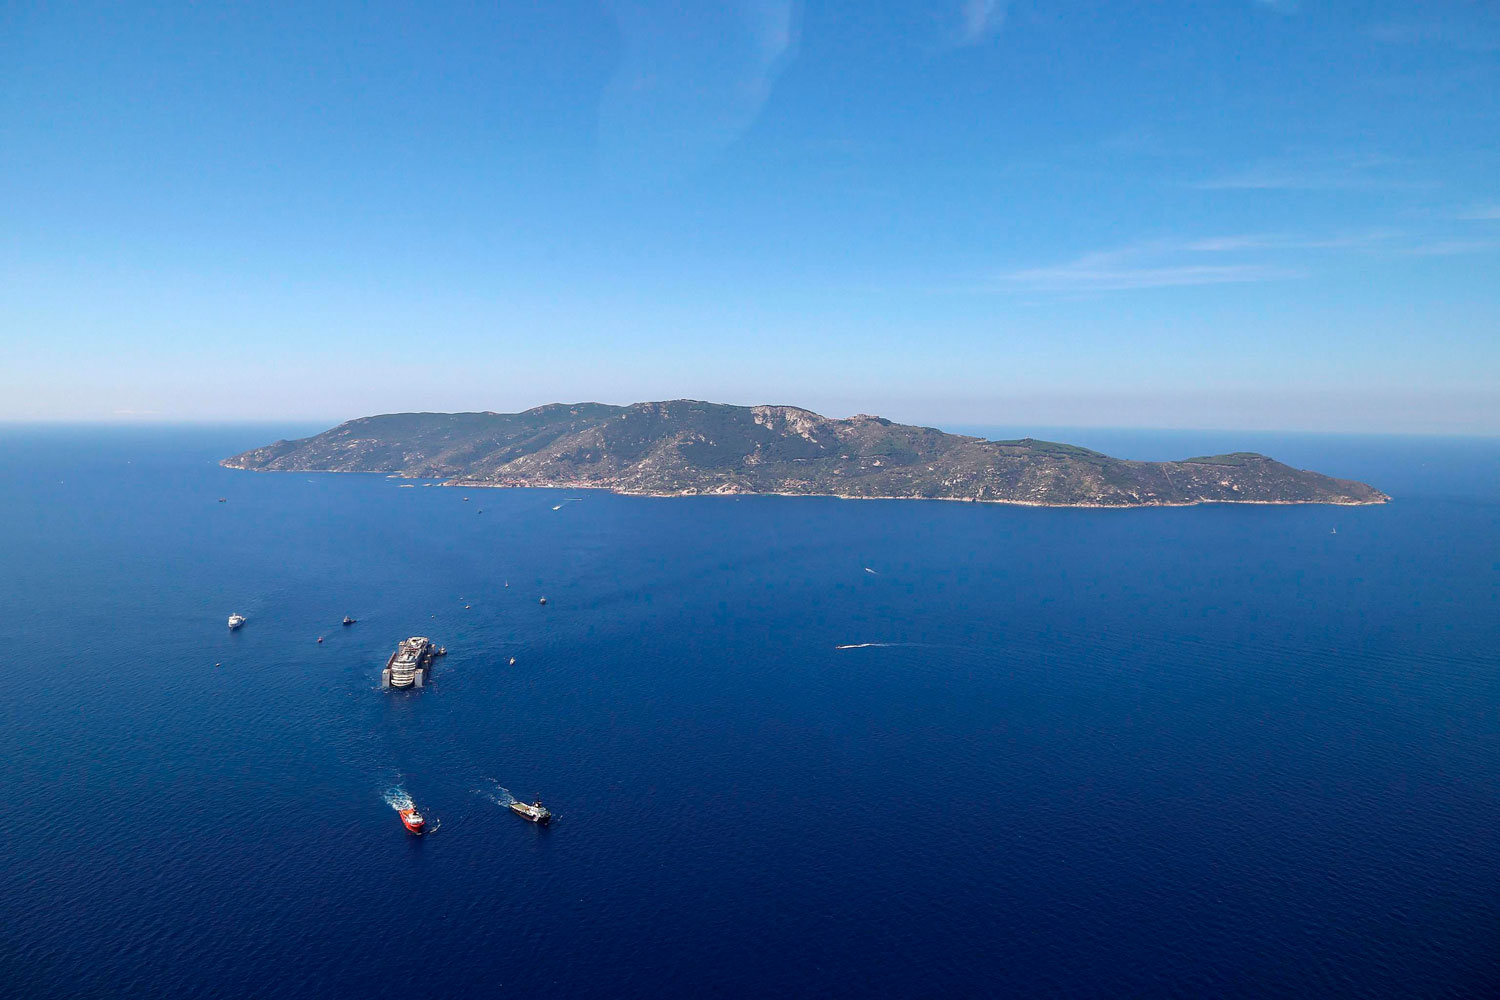 An aerial photo of the wrecked Italian cruise liner the Costa Concordia as it is towed on its final journey to the port of Genoa, Italy from Giglio Island, Italy 240 kilometers away on July 23, 2014.